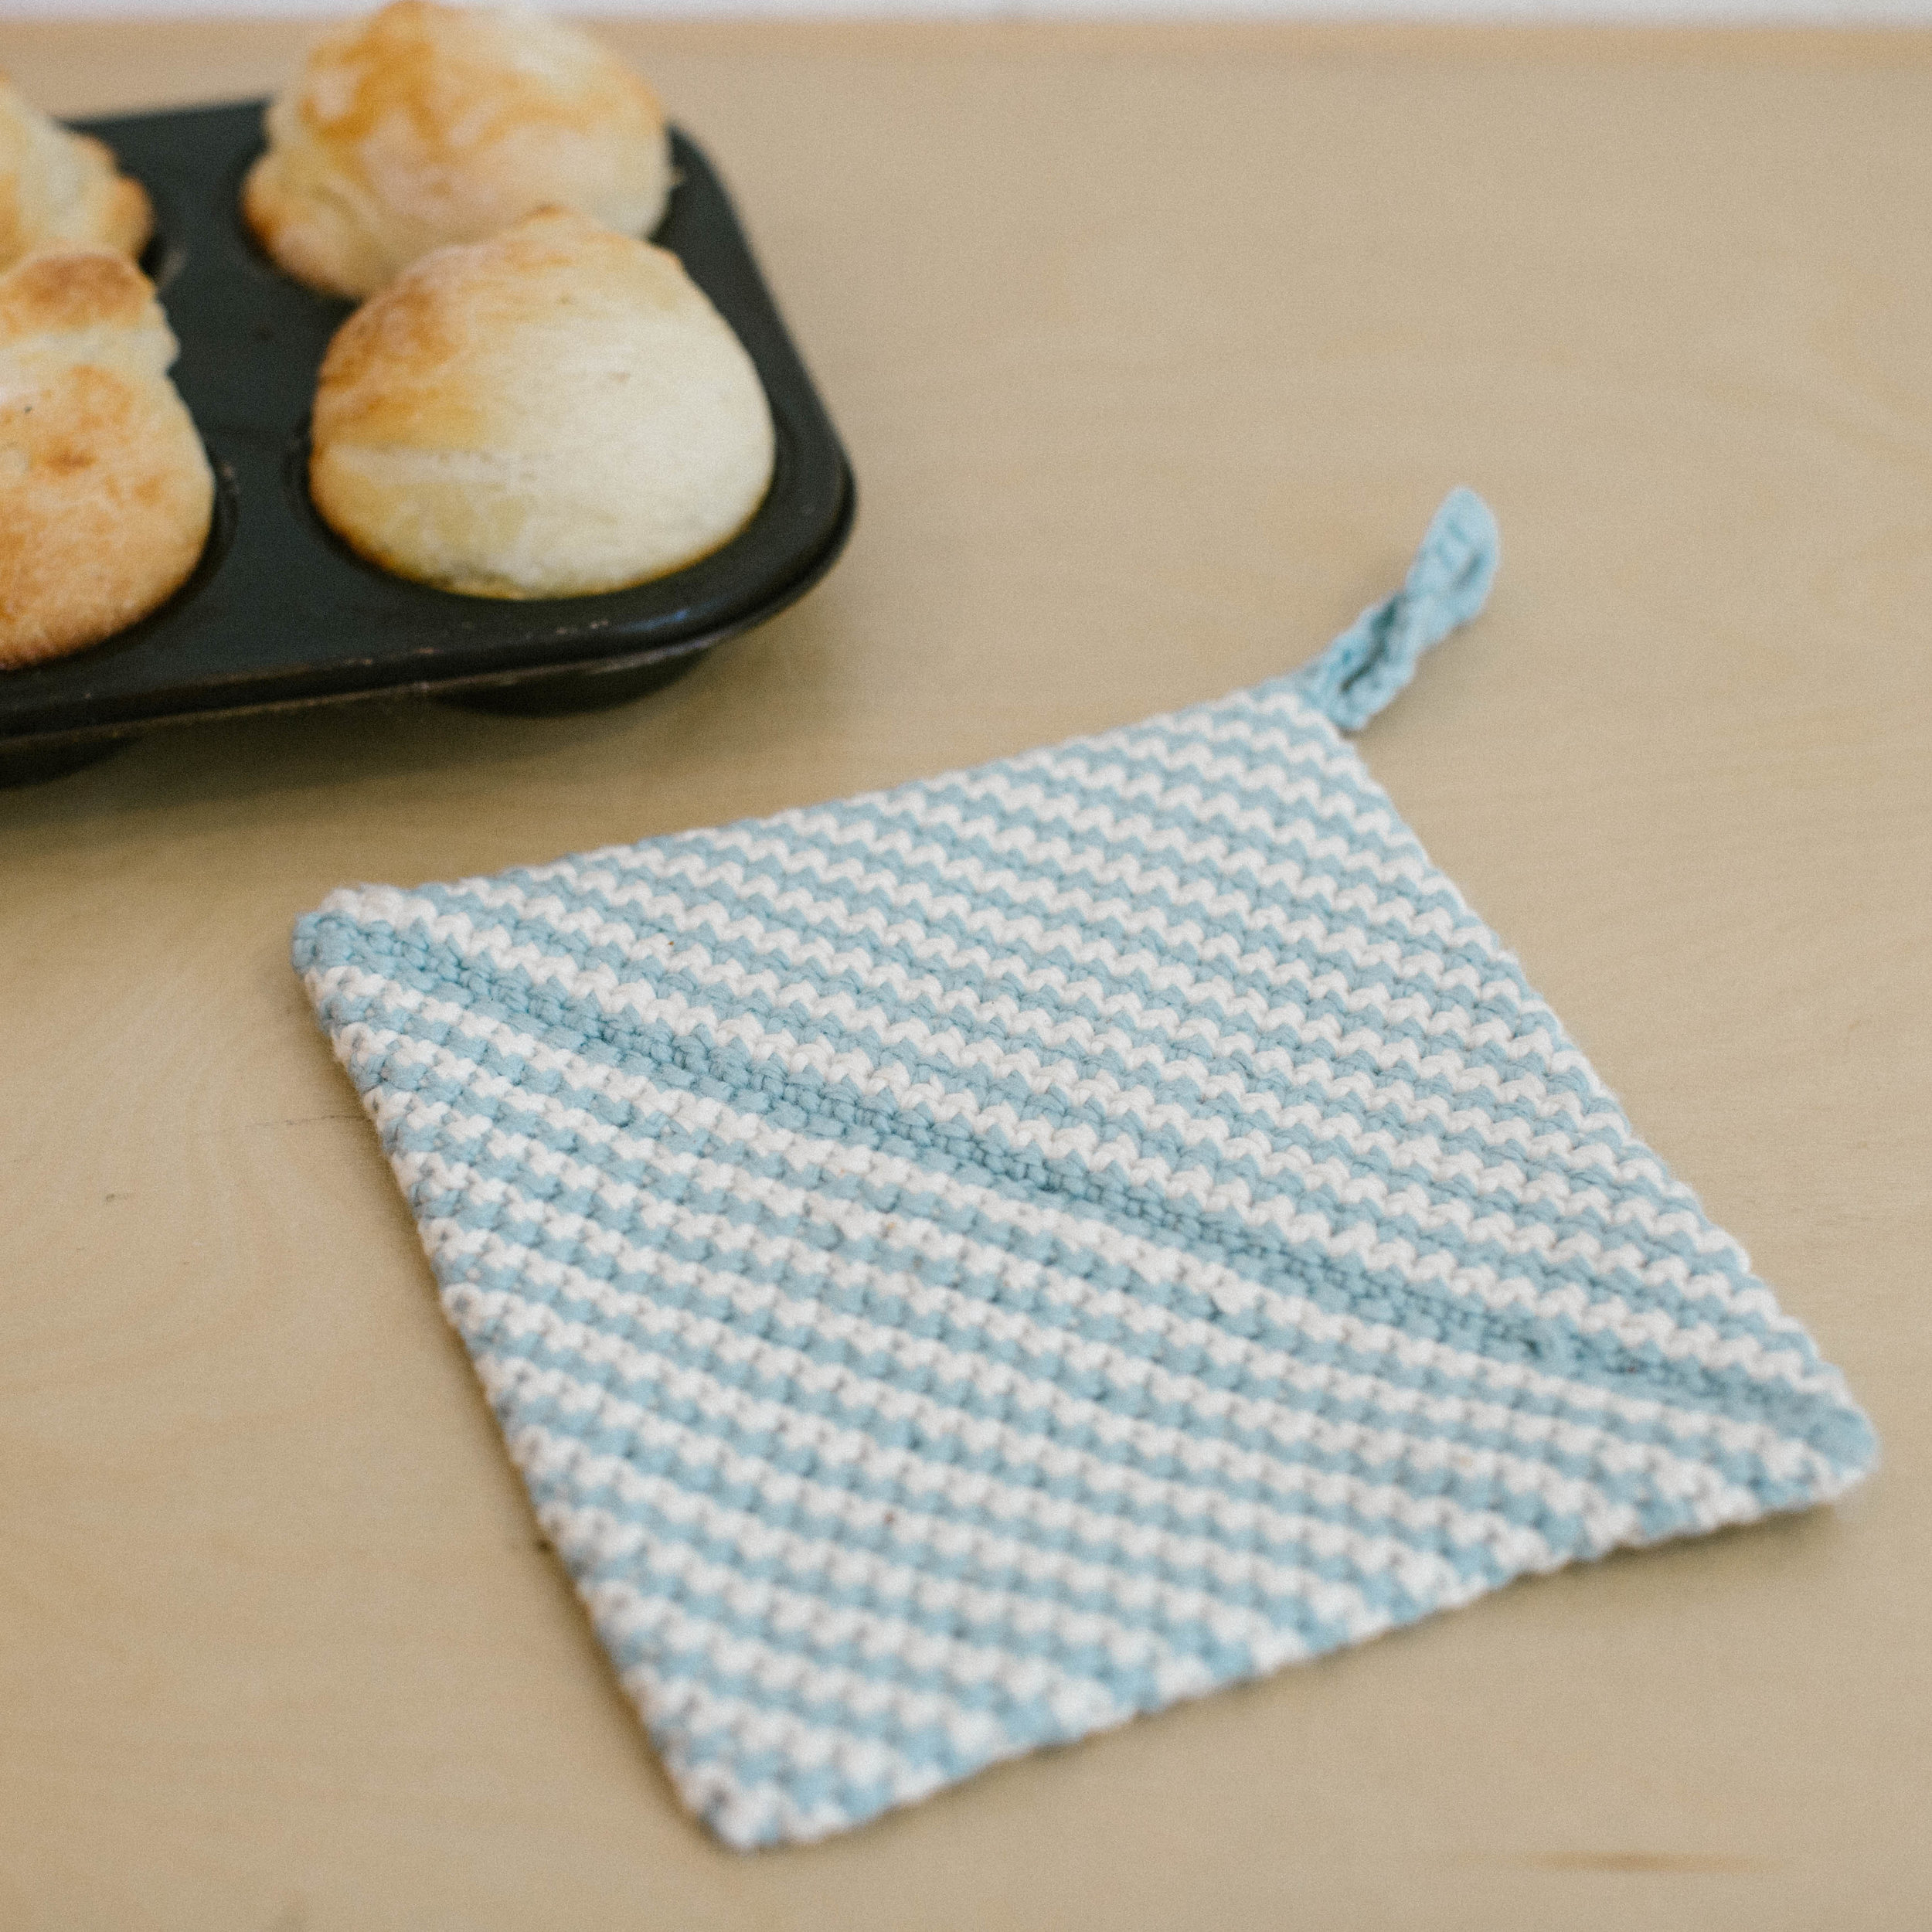 """Cattywampus Craft's """"Origami Potholder"""" - How cute and clever is that diagonal seam, though? Our personal favorite reason for a road trip to Ojai have something for the crocheters and the bakers alike!"""